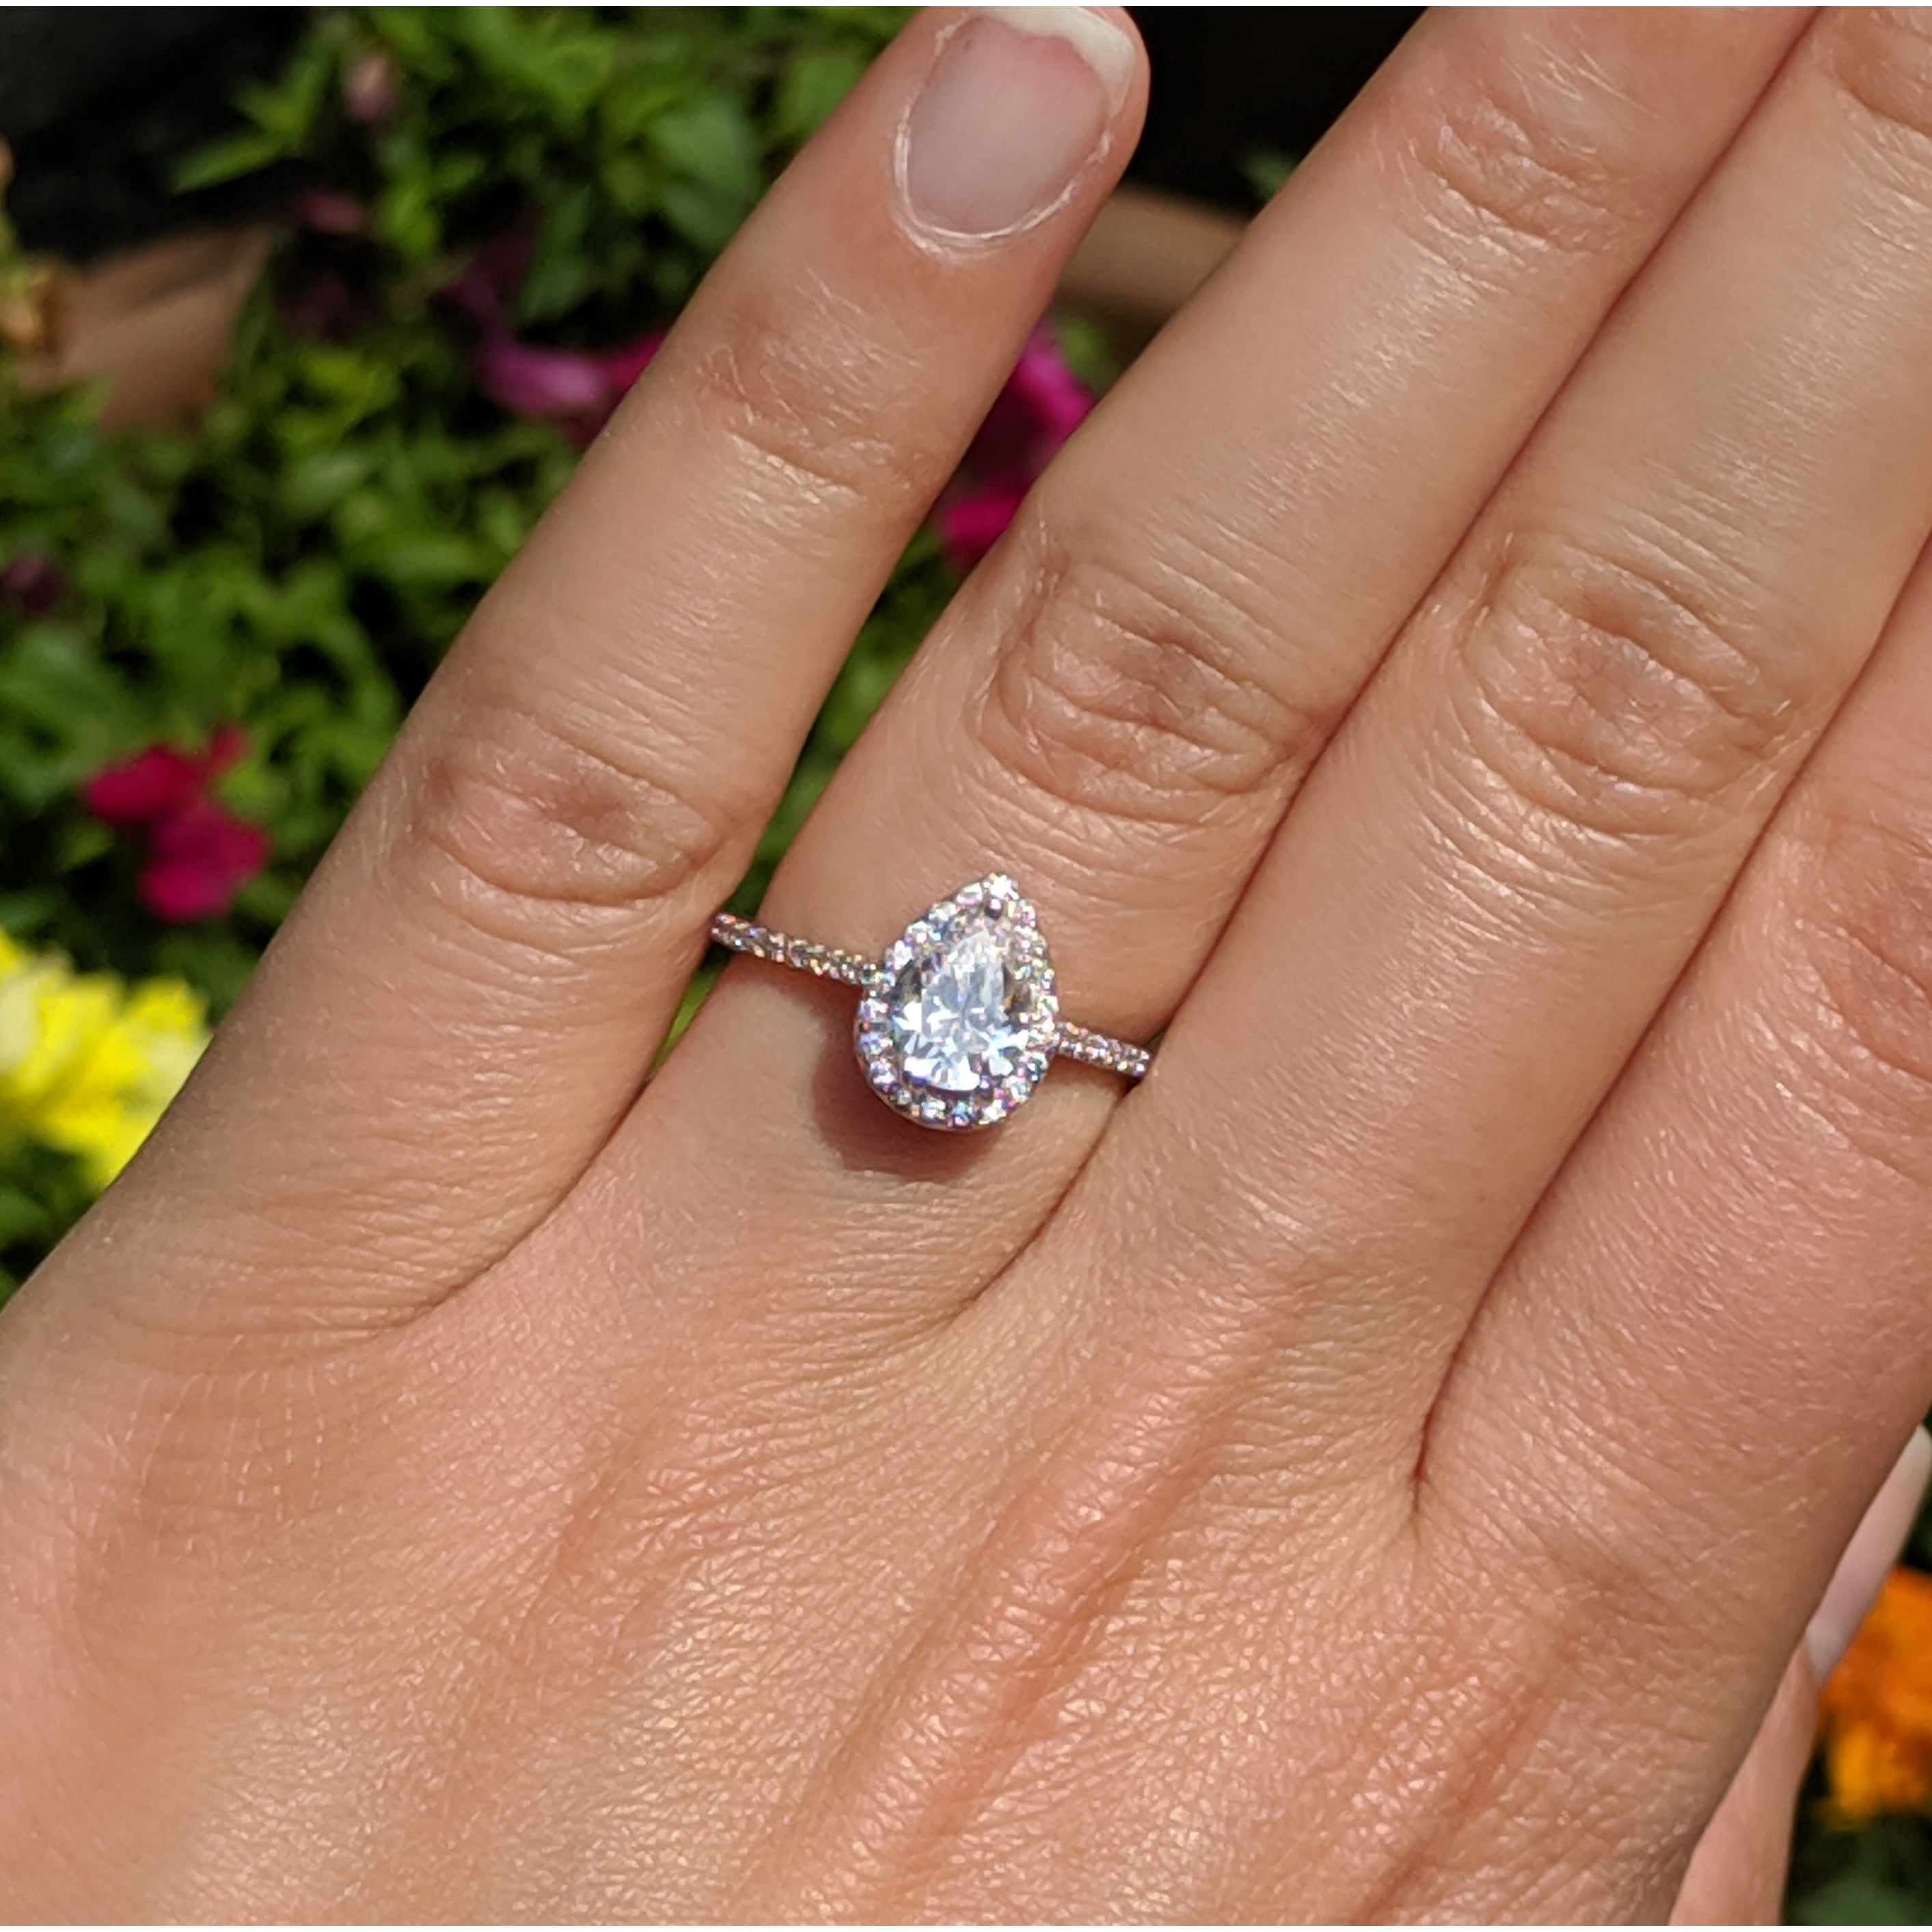 Shop Twobirch Classic Pear Shaped Diamond Halo Engagement Ring In 10k Gold 1 8 Ct G H I2 On Sale Overstock 28890546